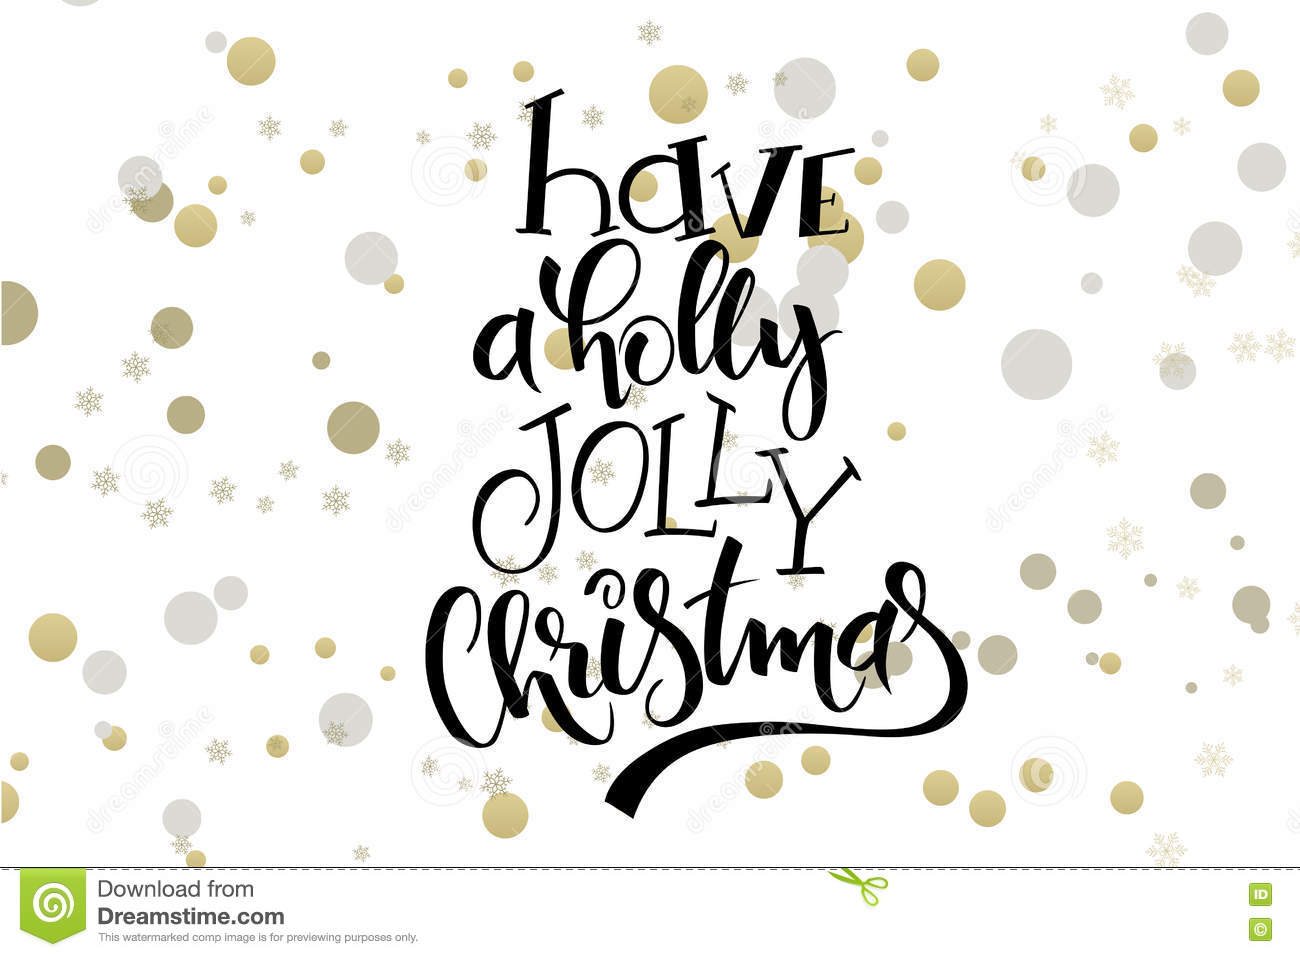 download vector hand lettering christmas greetings text have a holly jolly christmas with ellipses - Have A Holly Jolly Christmas